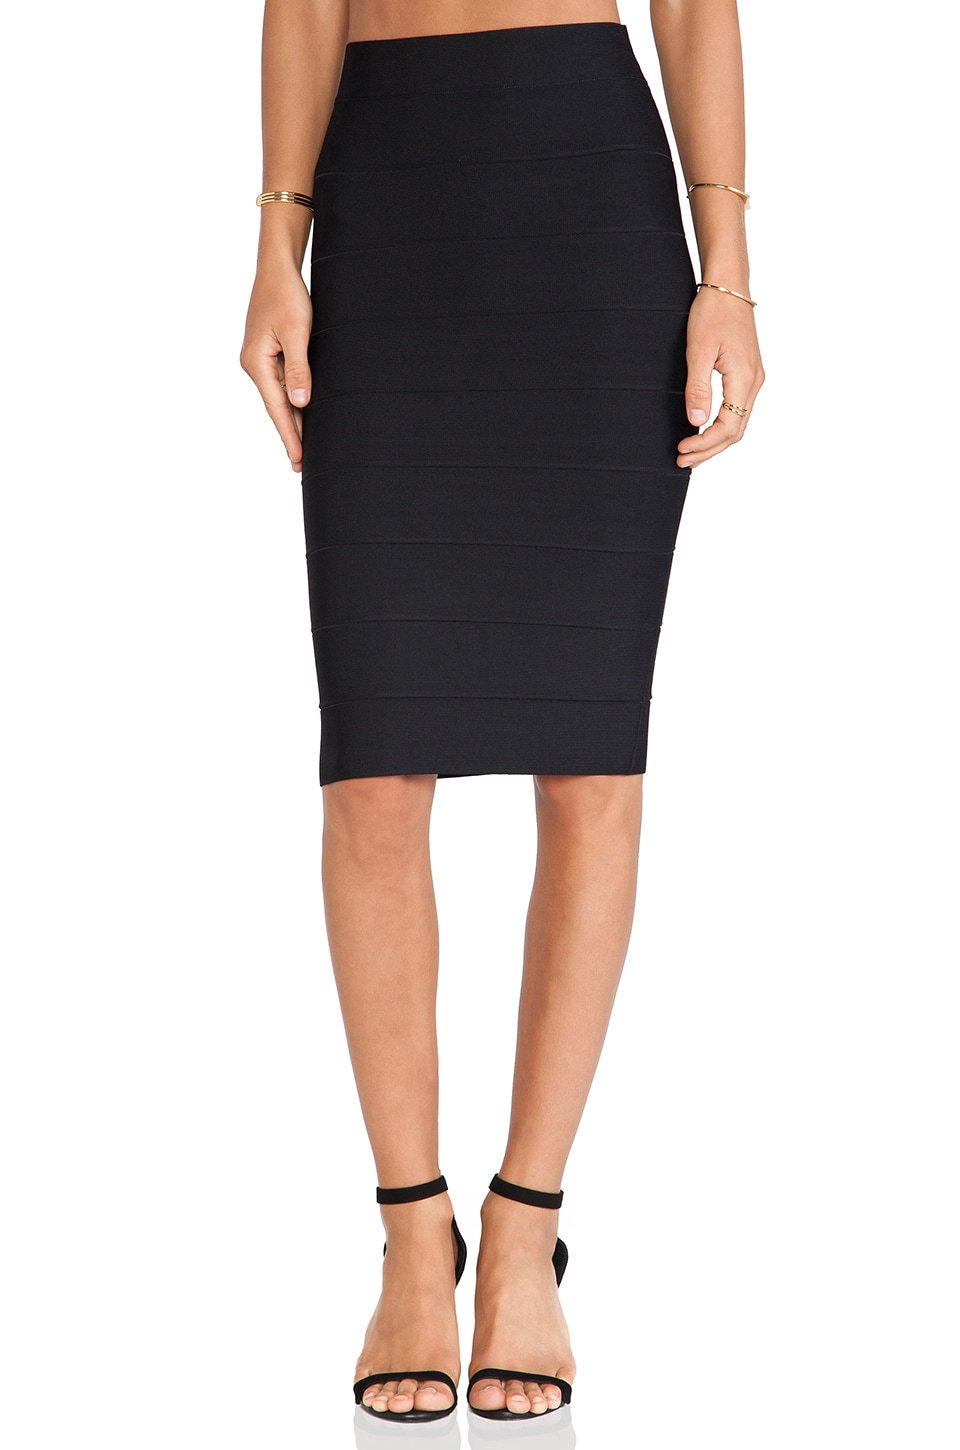 BCBGMAXAZRIA Leger Pencil Skirt in Black